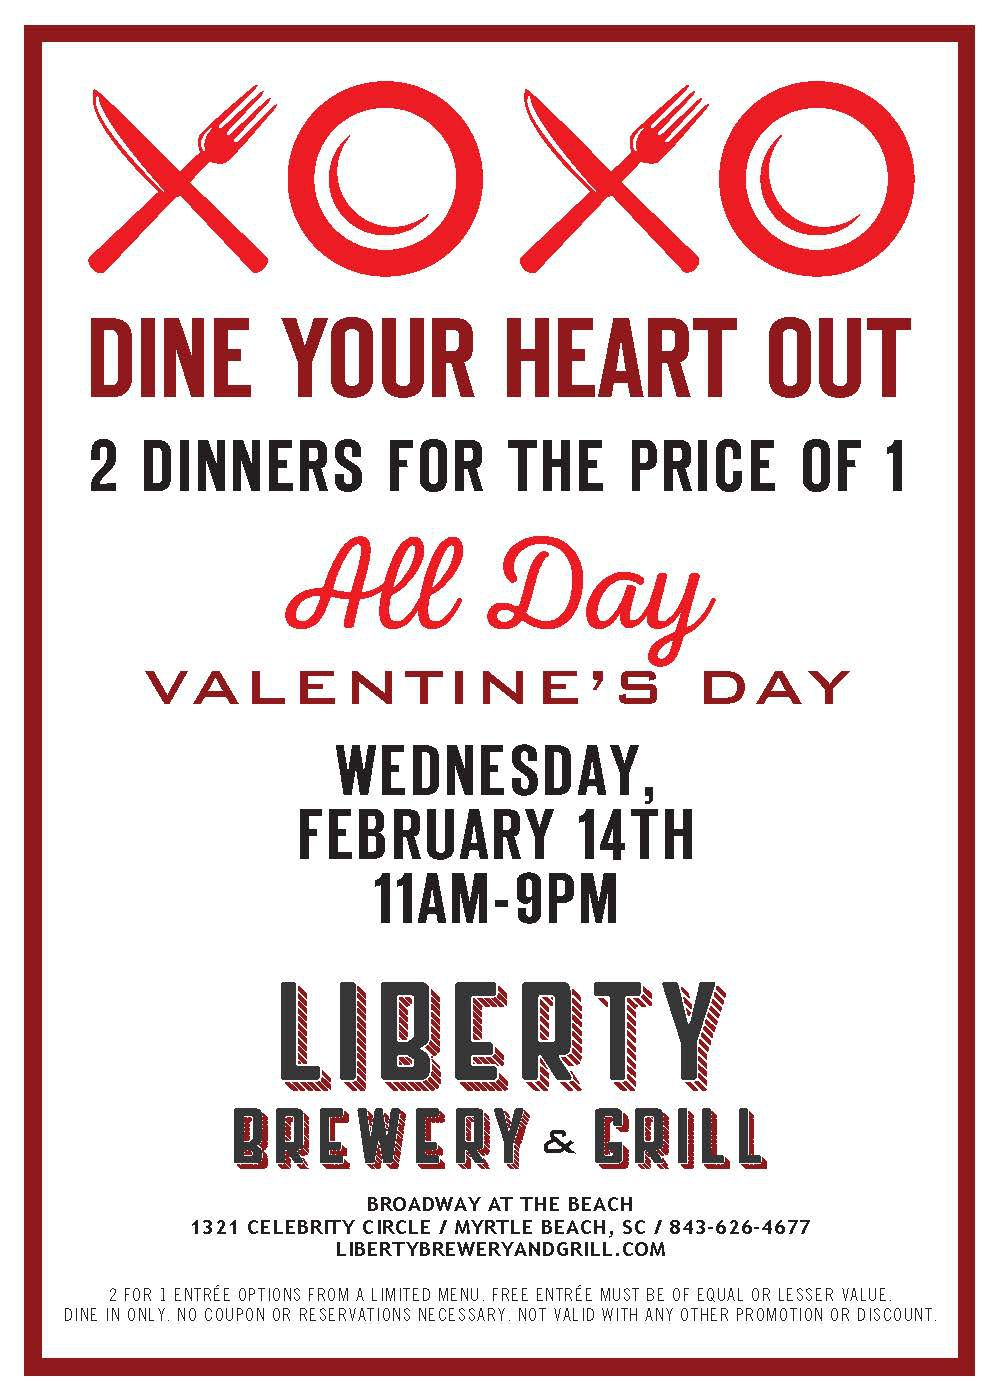 (300)Liberty Brewery 2 for 1 Valentine's Day.jpg